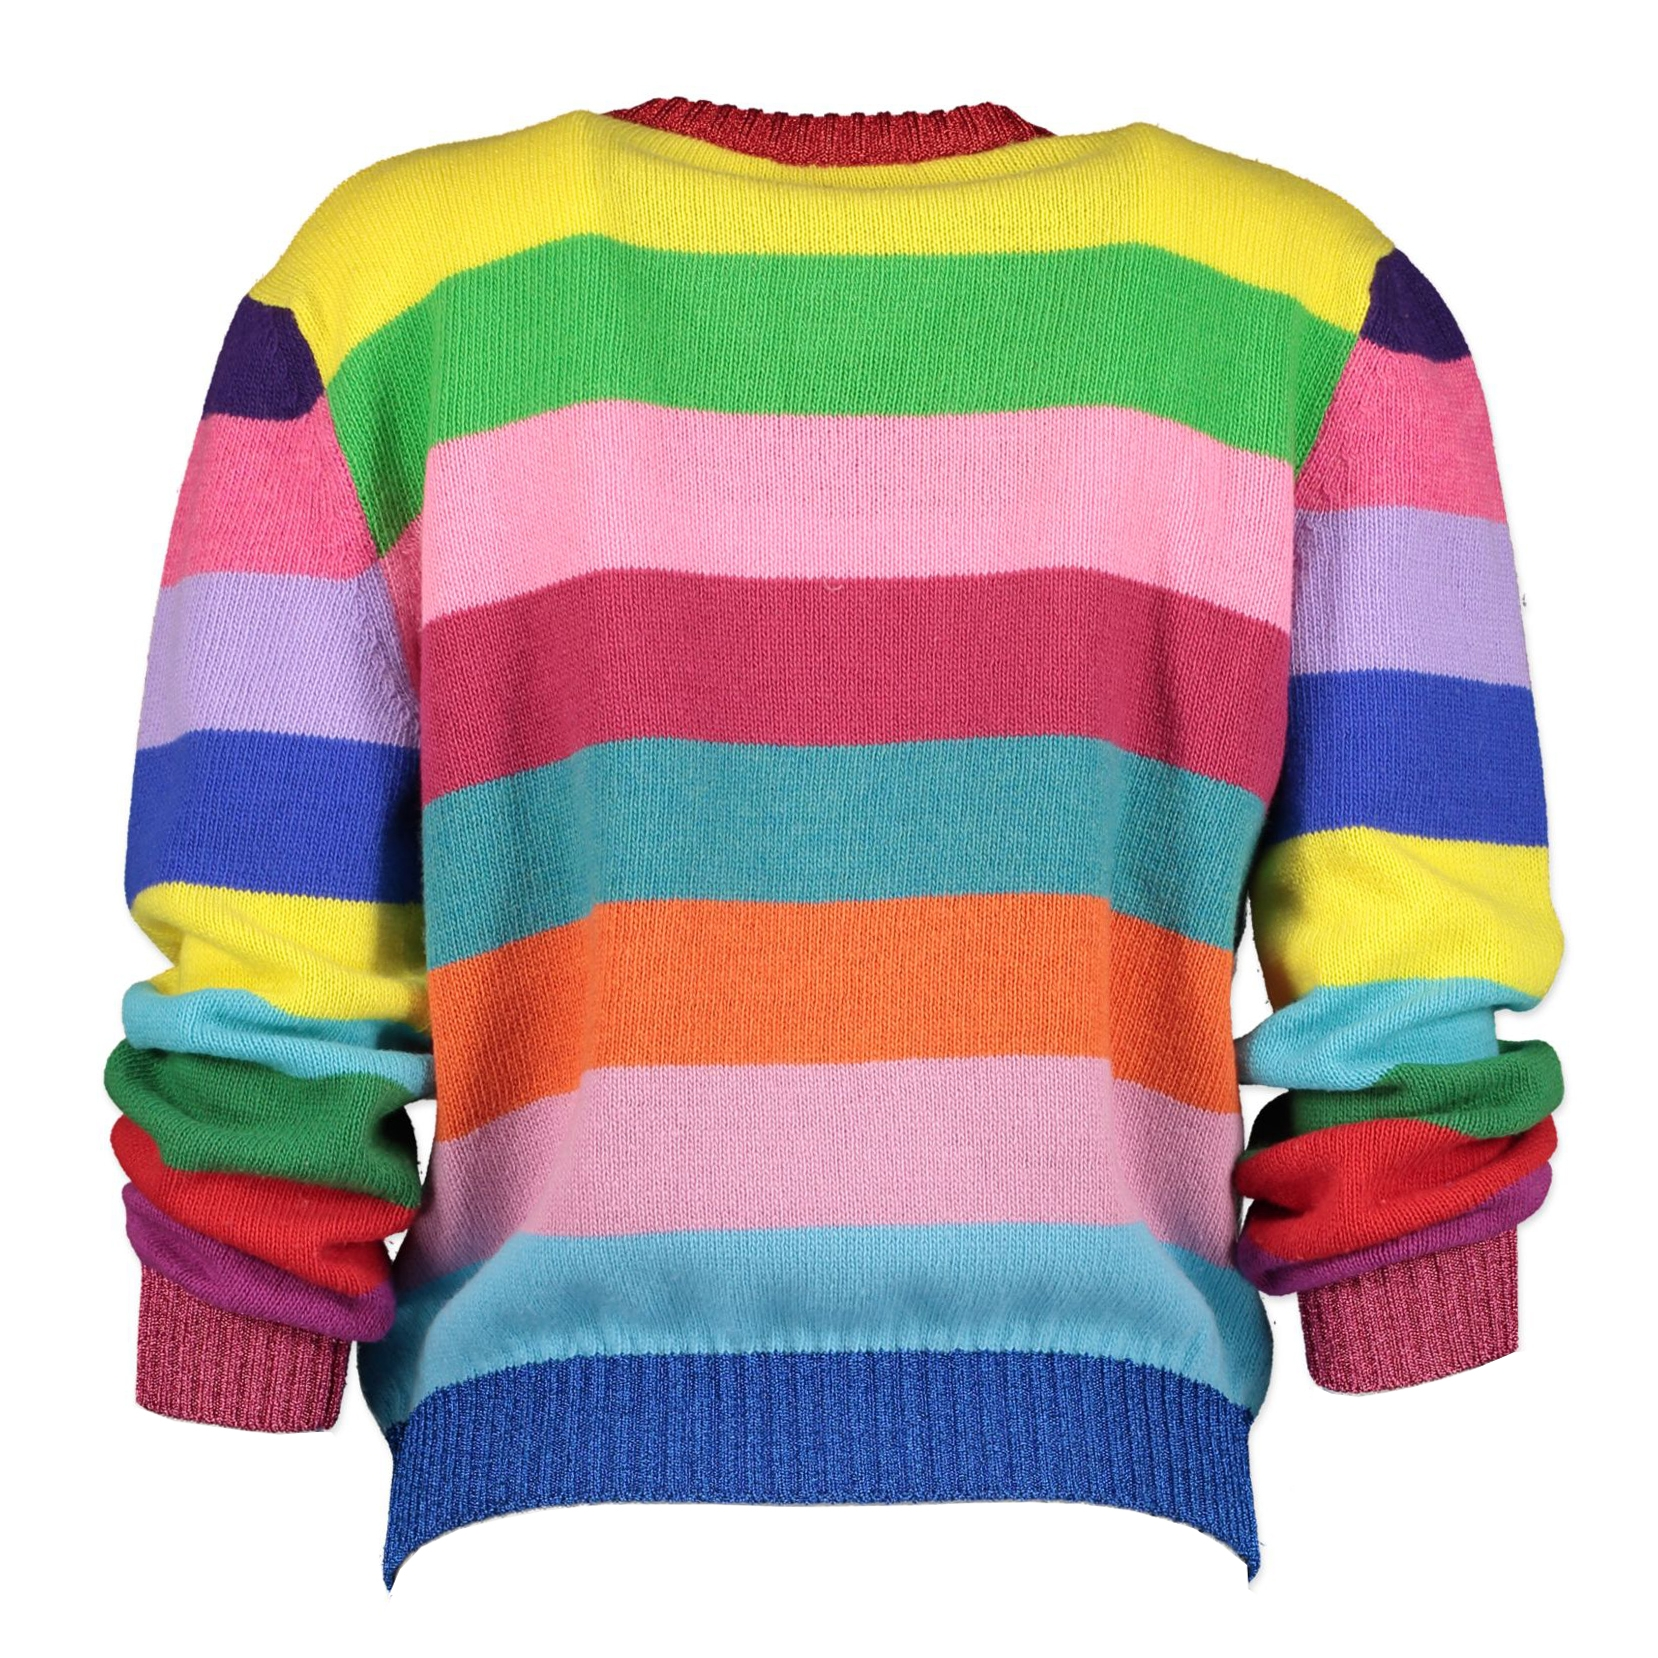 We buy and sell your authentic Gucci Rainbow Tiger Sweater - size M